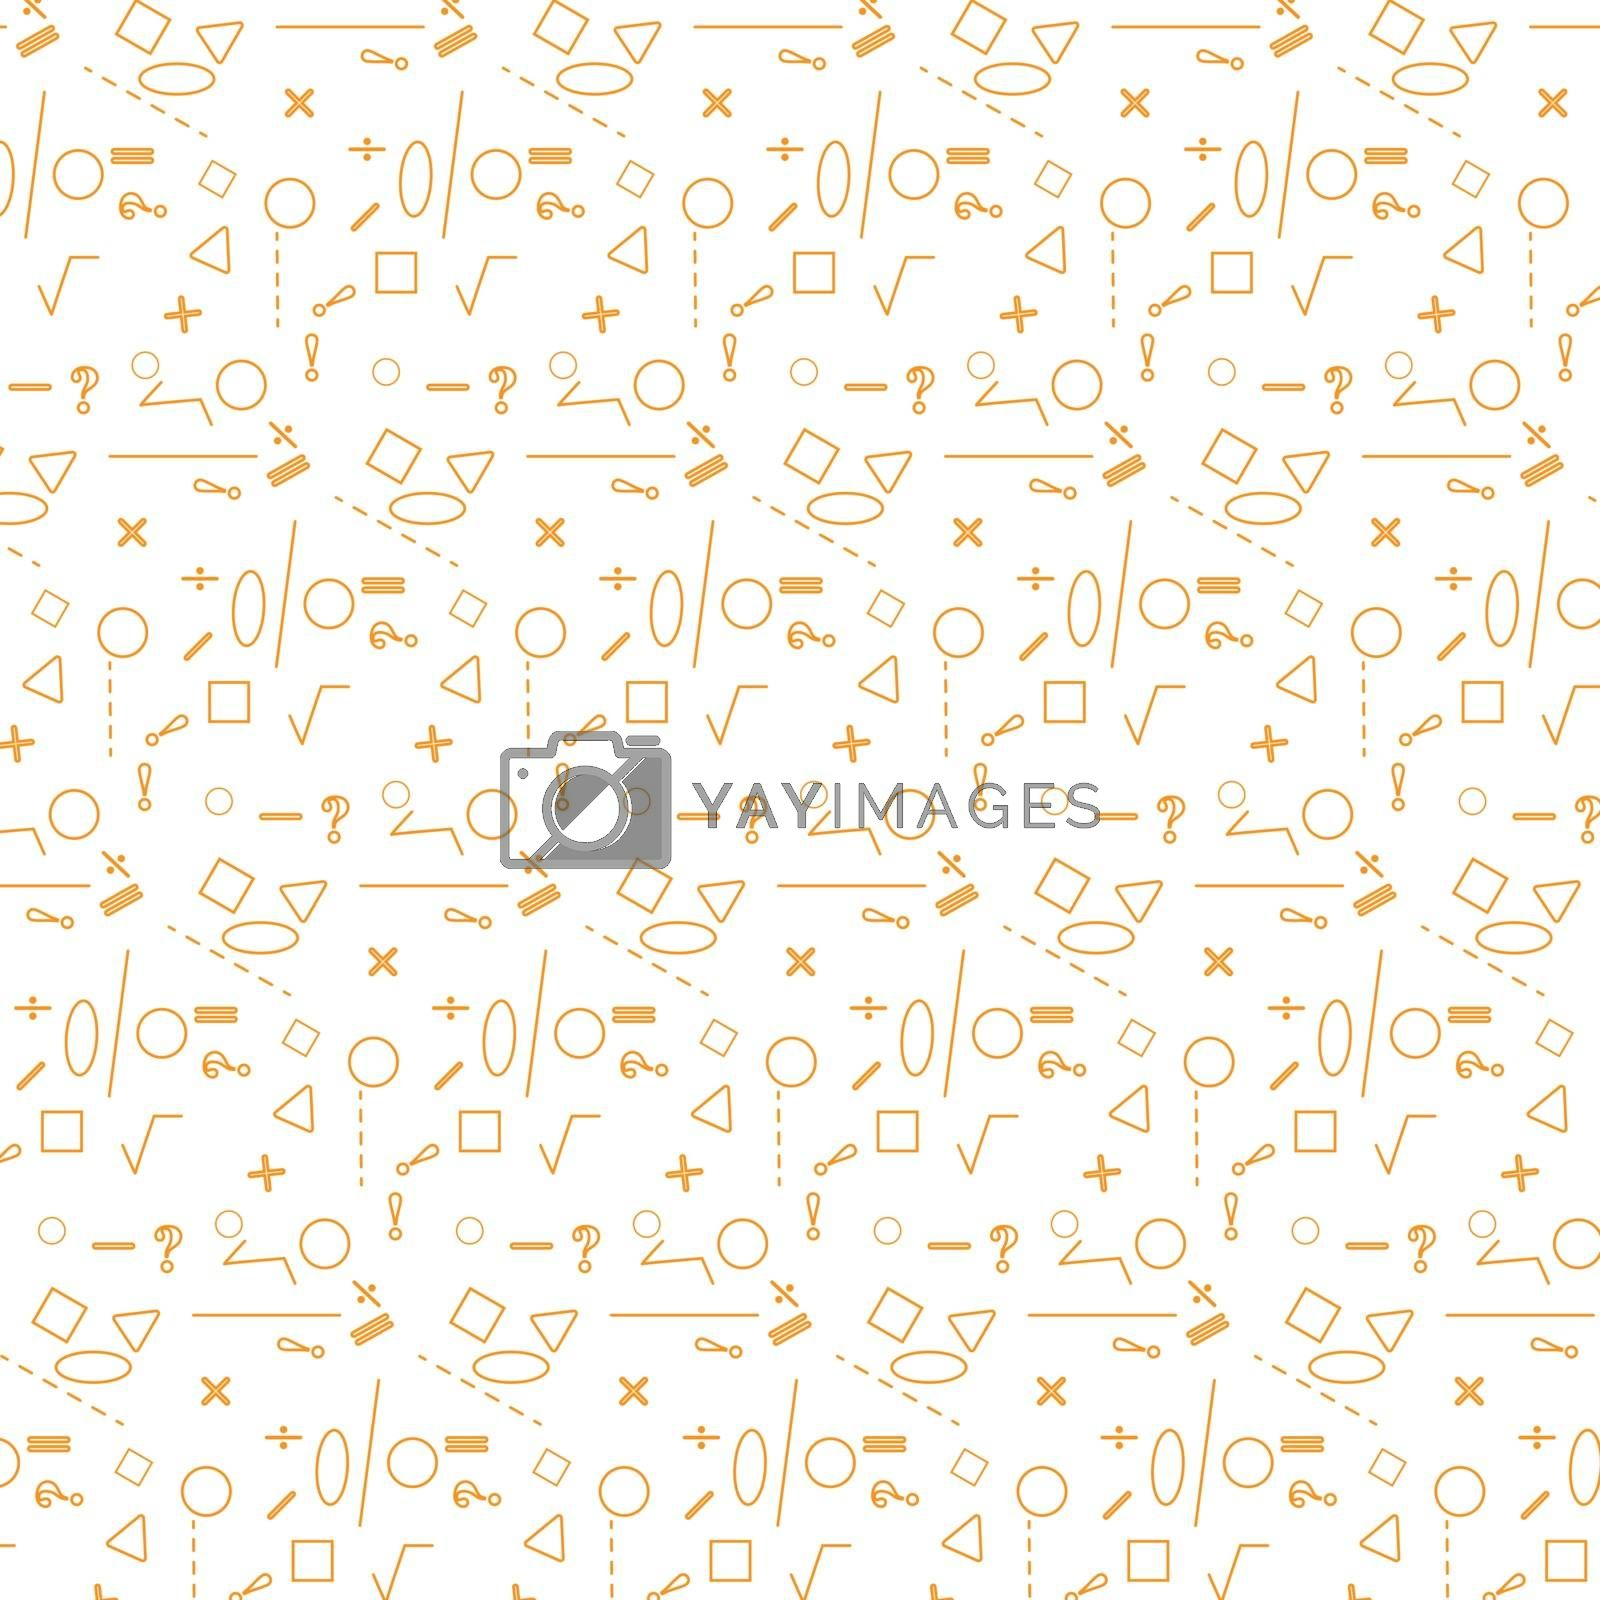 Royalty free image of Geometric pattern with mathematical and geometric symbols by Grommik